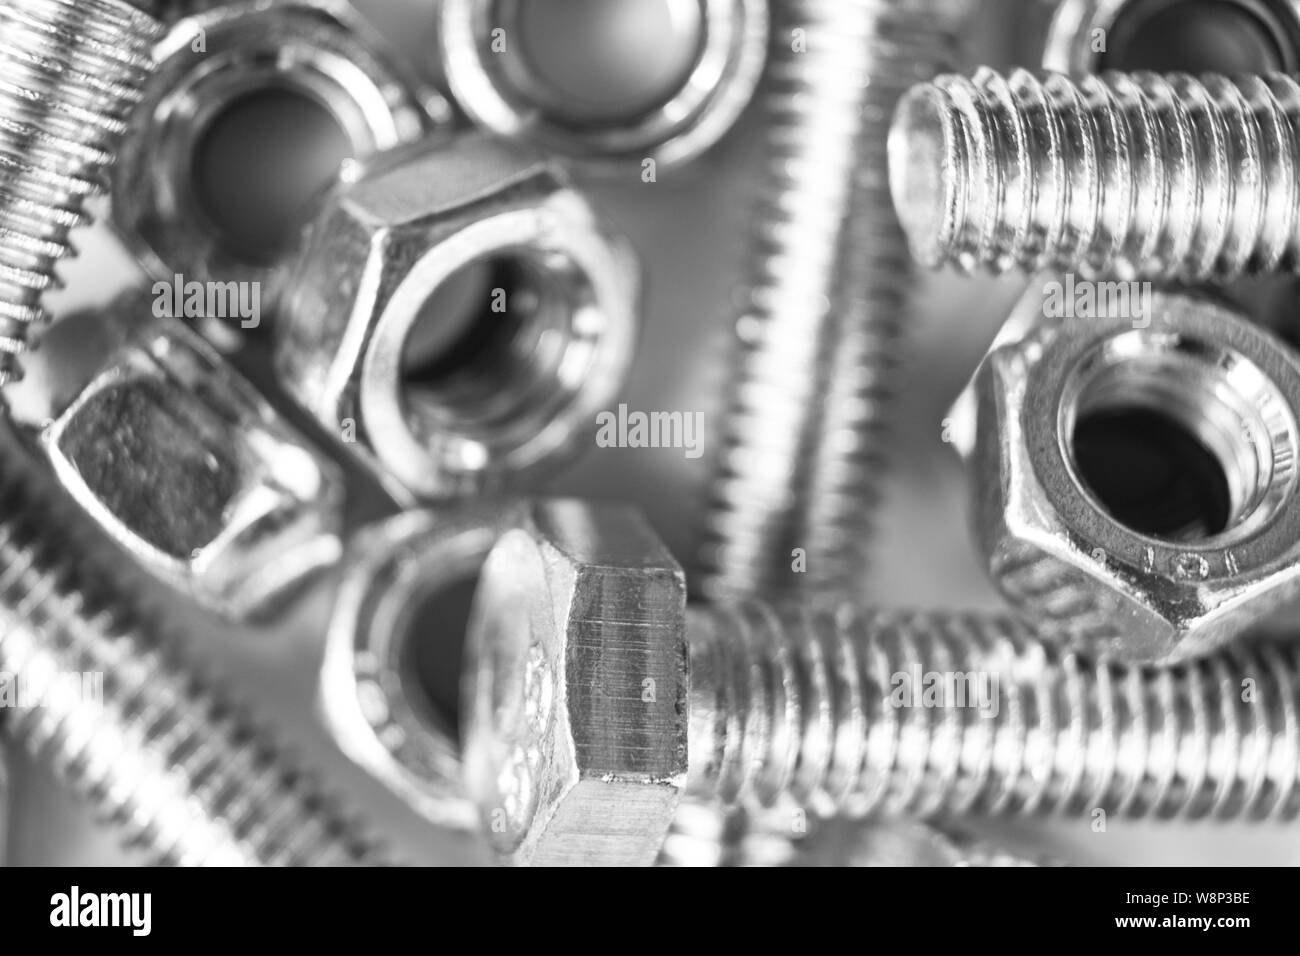 Metal bolts and nuts  in a row background. Chromed screw bolts and nuts isolated. Steel bolts and nuts pattern. Set of Nuts and bolts. Tools for work. Stock Photo